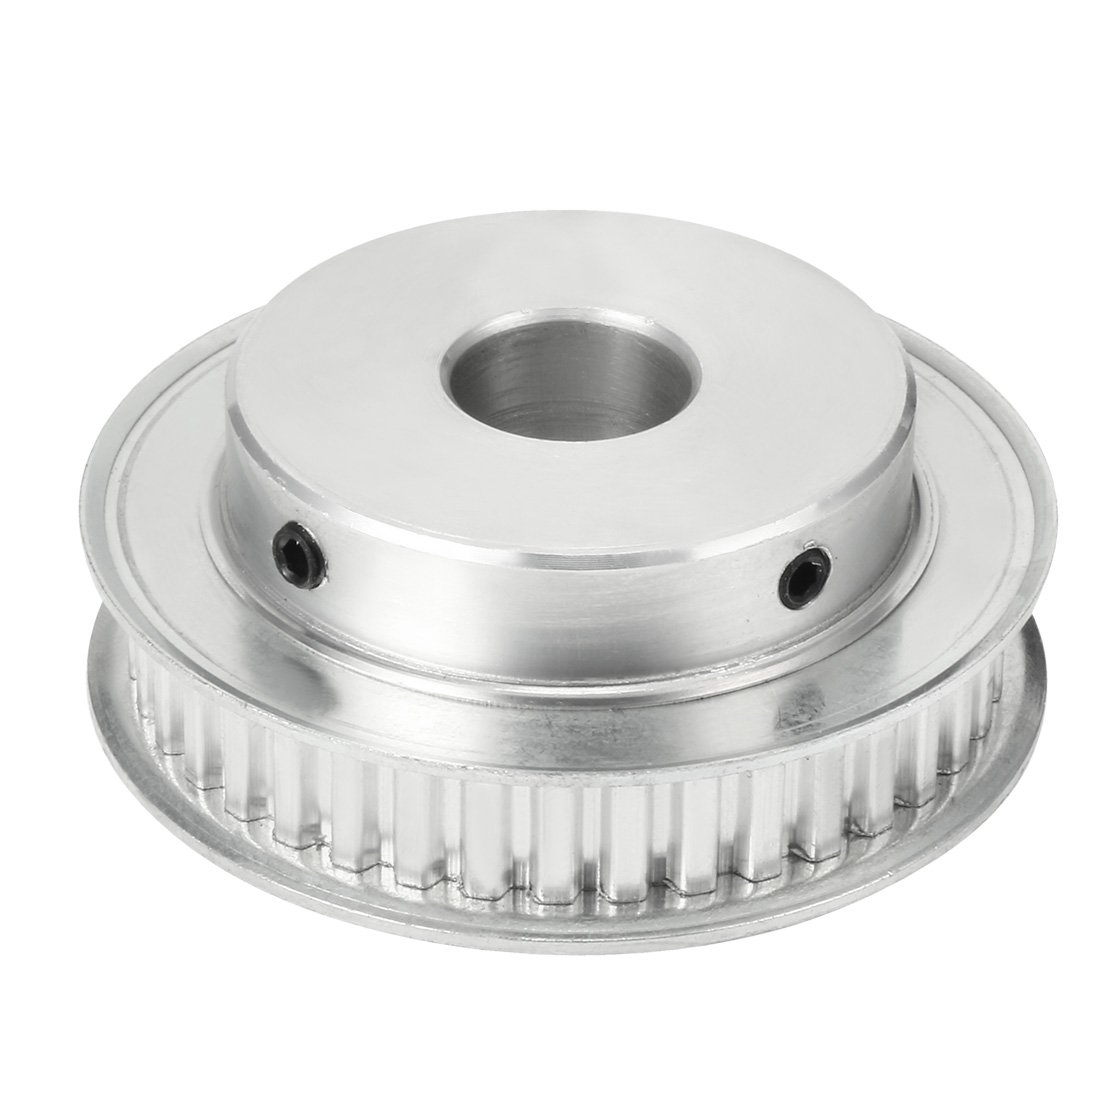 uxcell Aluminum XL 40 Teeth 14mm Bore Timing Belt Idler Pulley Flange Synchronous Wheel for 10mm Belt CNC